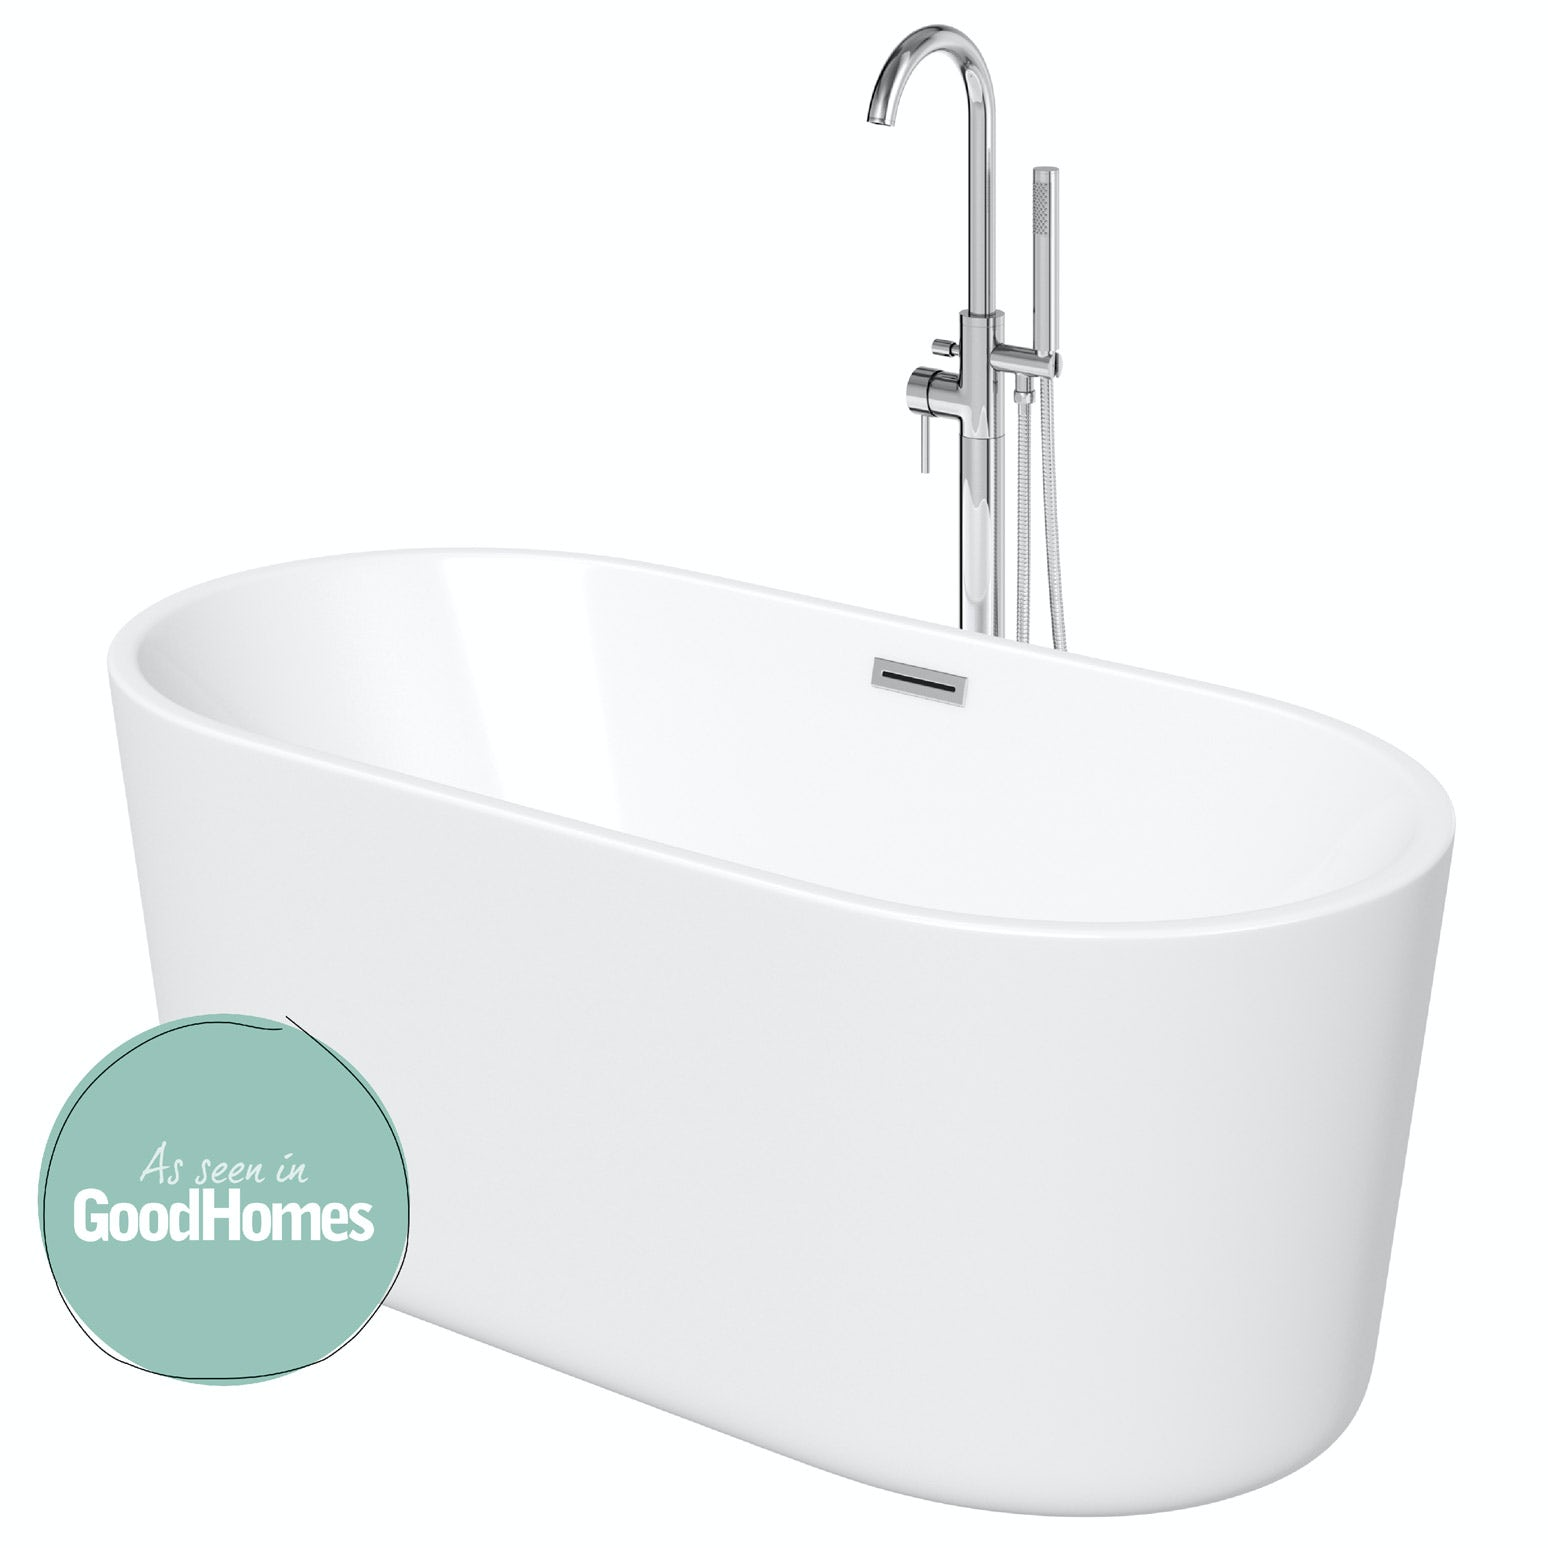 Mode Tate freestanding bath